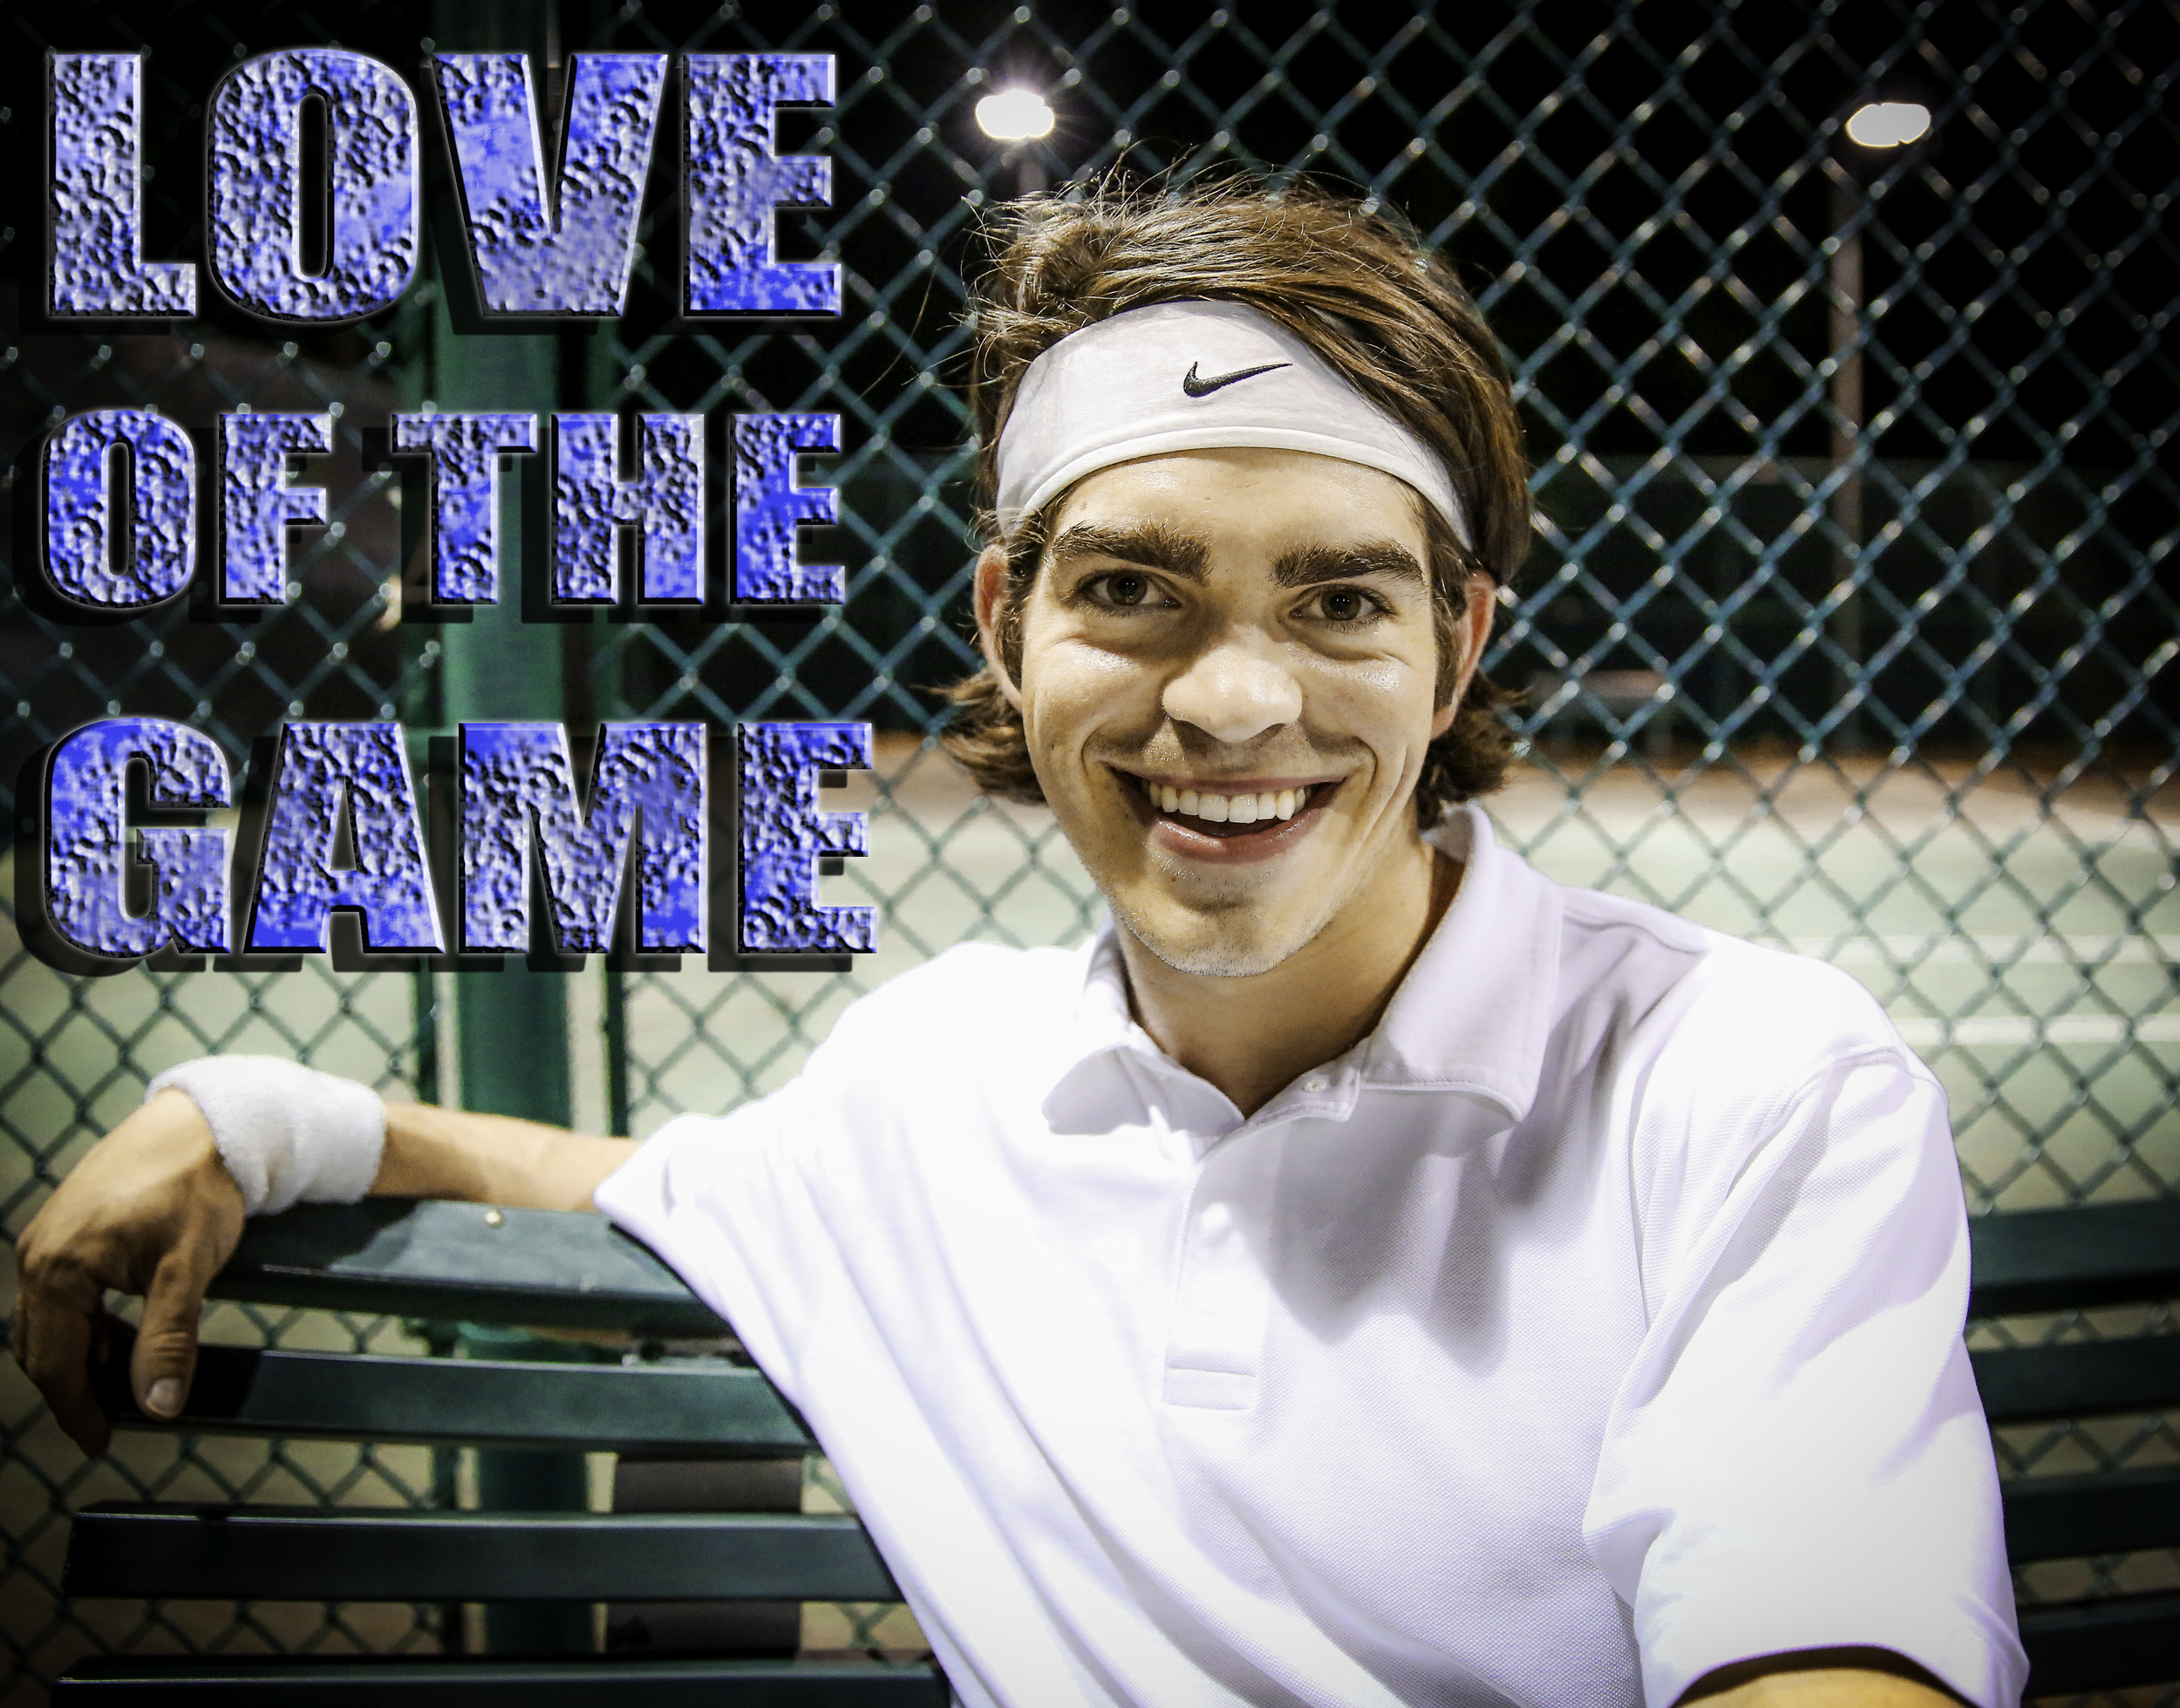 I can help you improve all aspects of your tennis game,